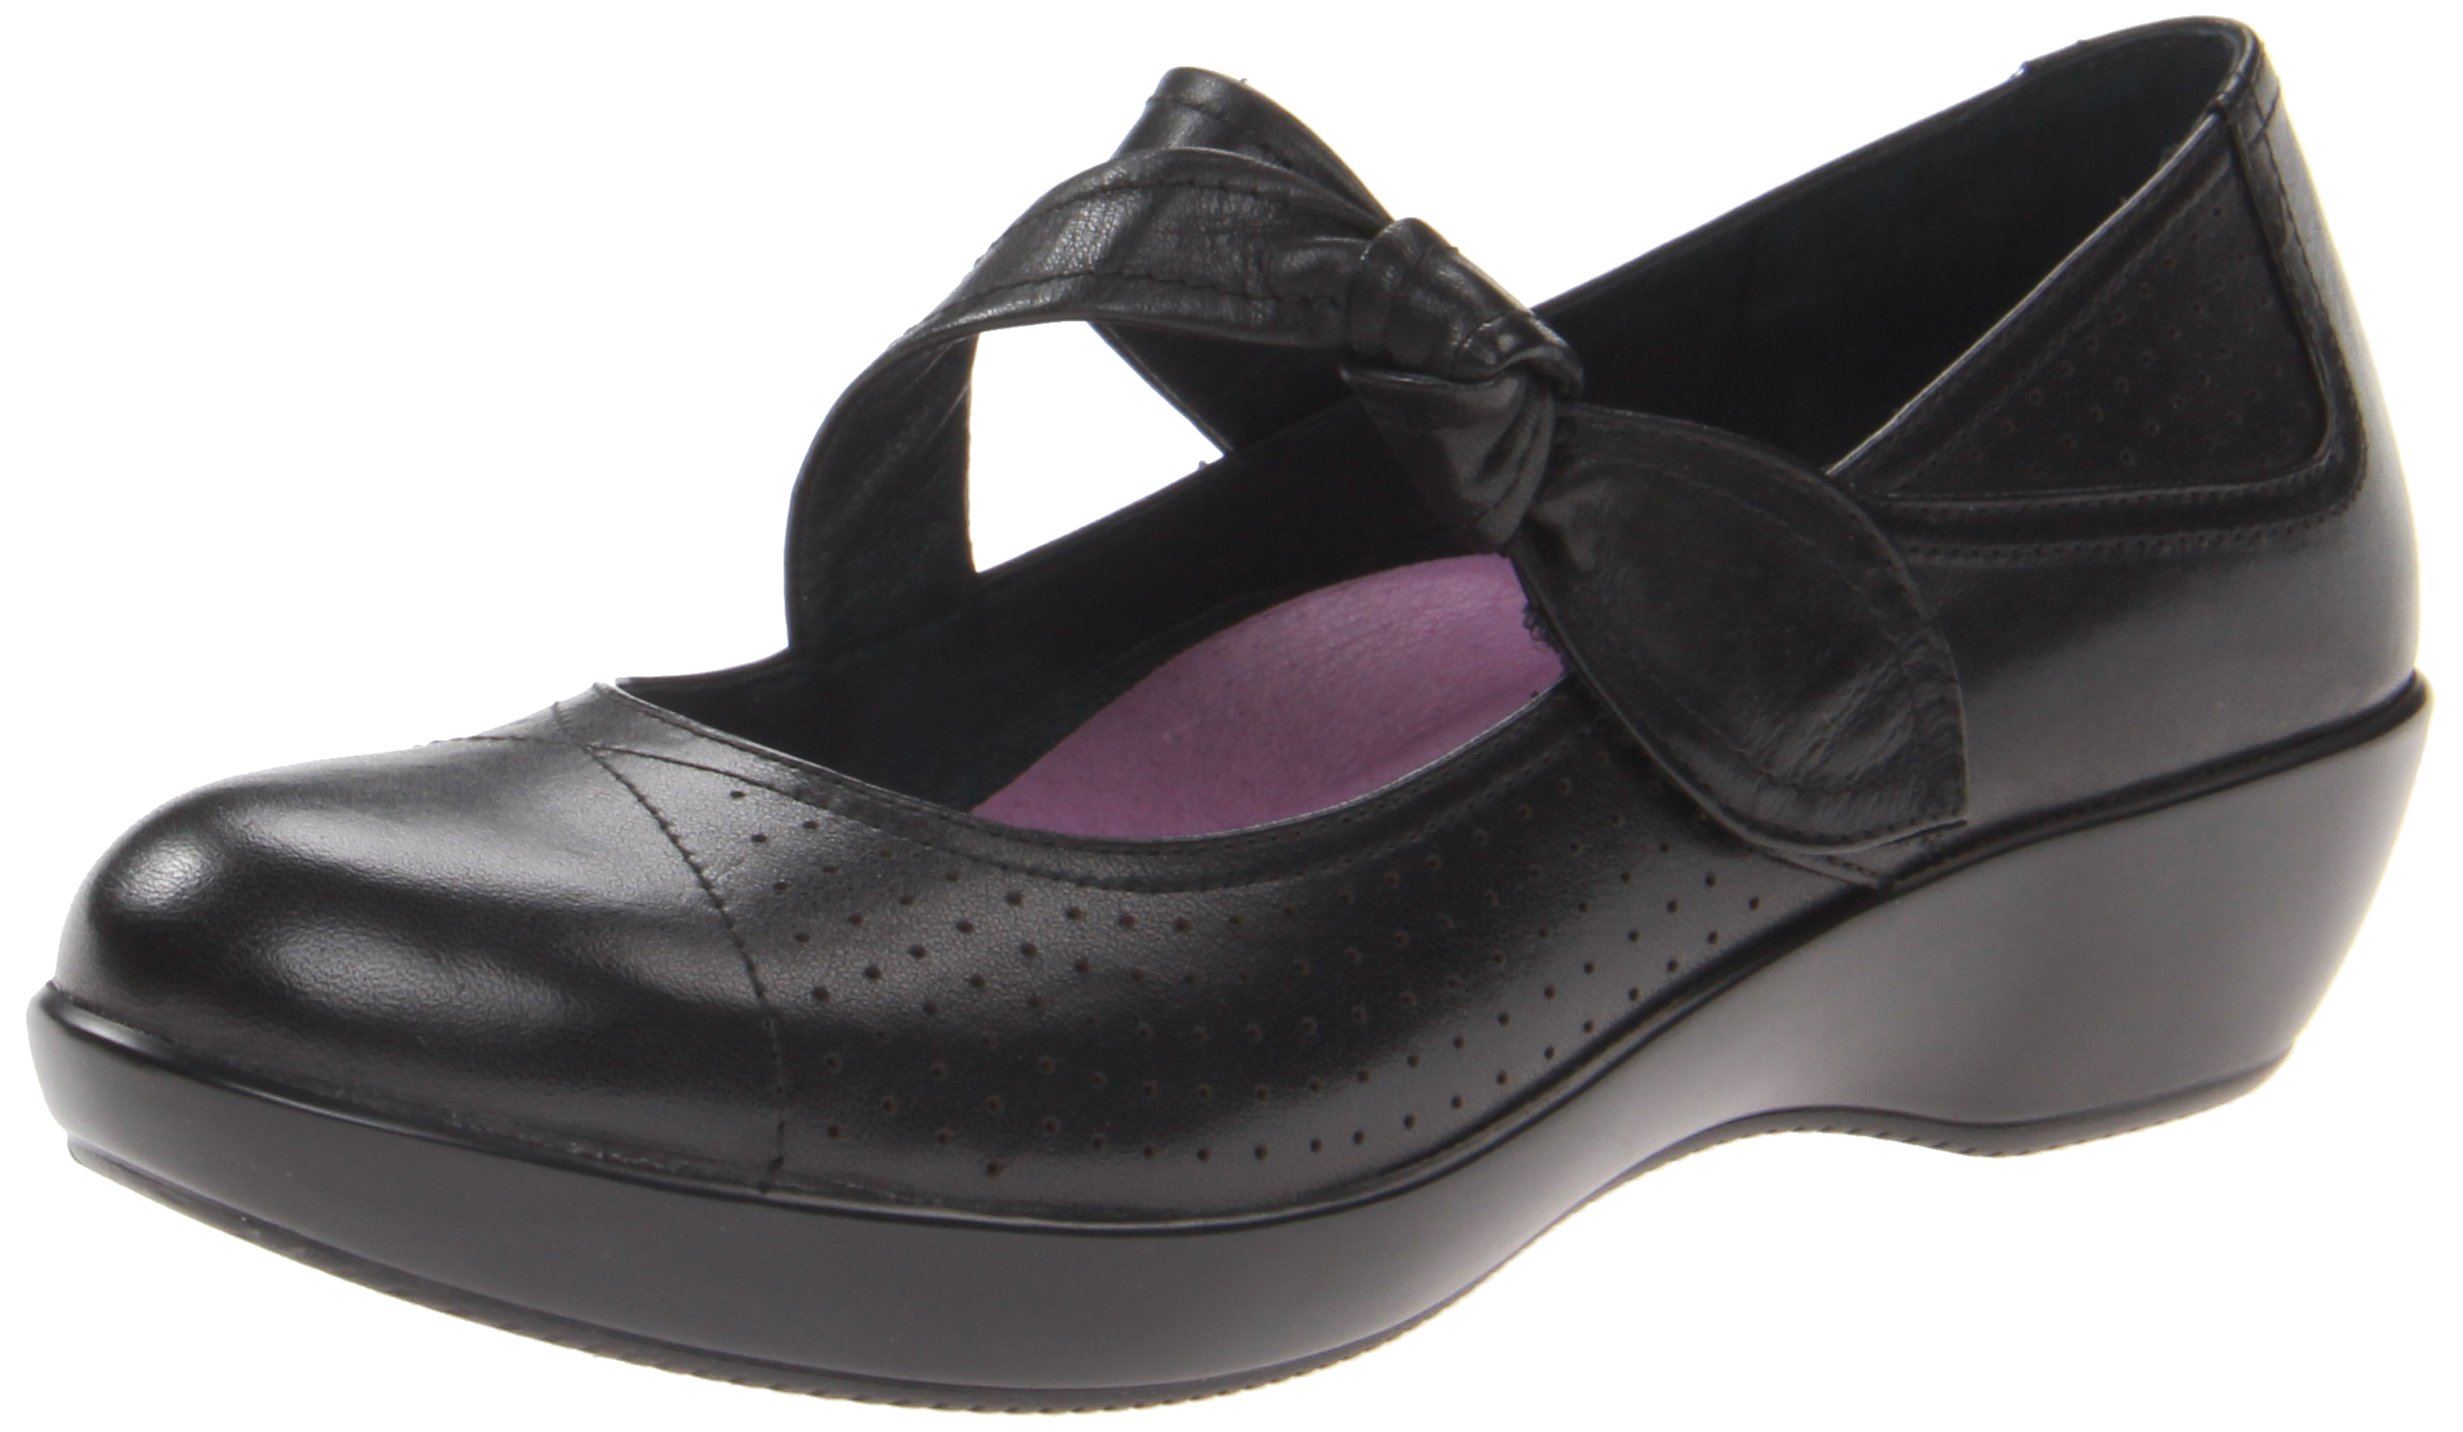 Dansko Women's Deidra Mary Jane Flat,Black,37 EU/6.5-7 M US by Dansko